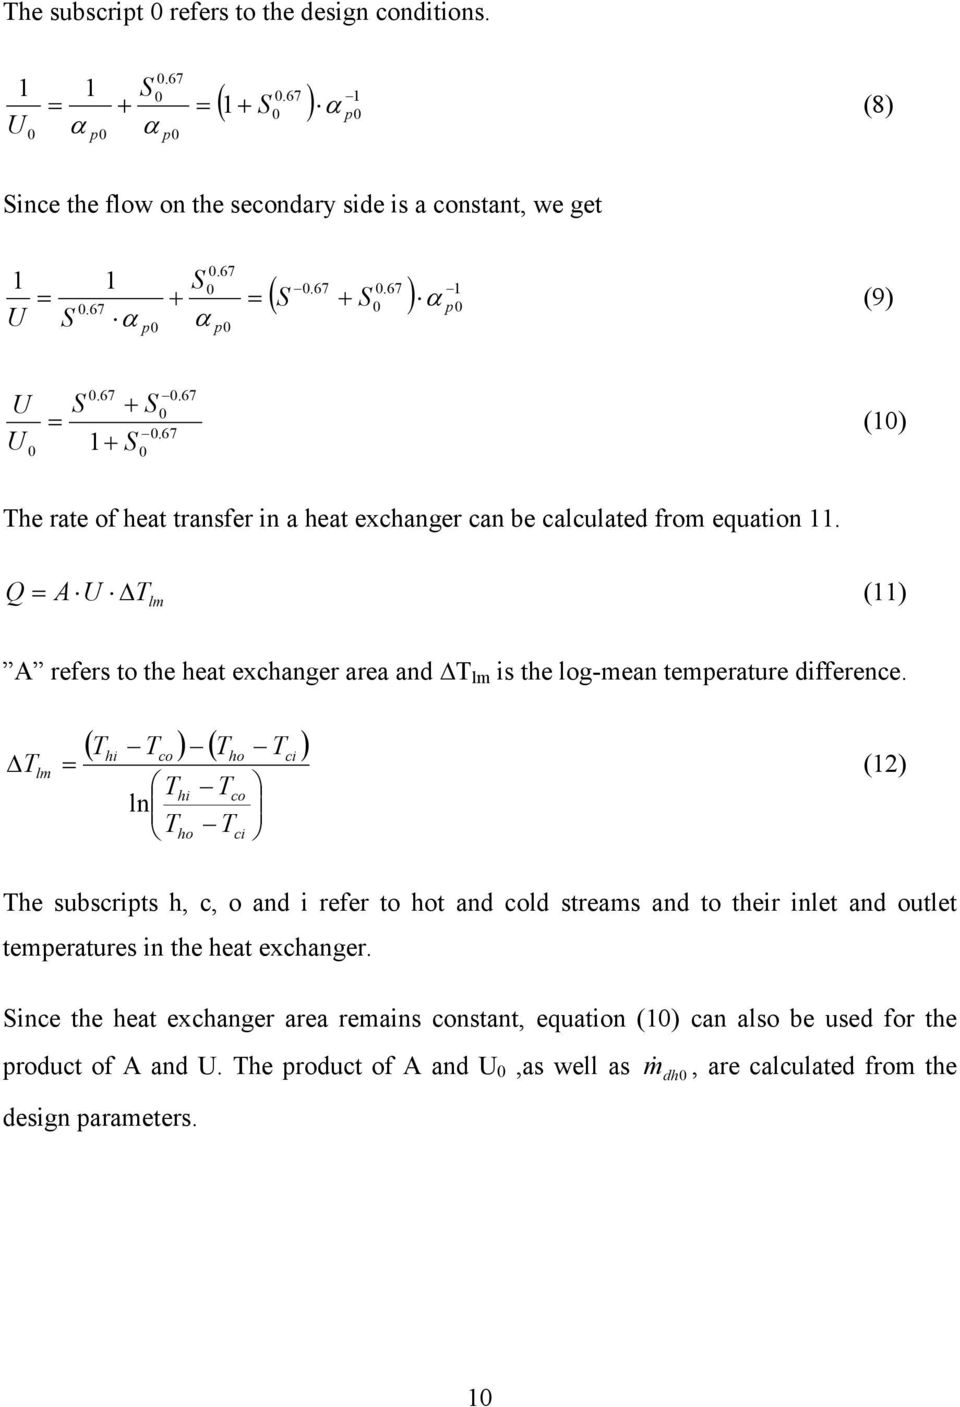 Q AU, T lm (11) A refers to the heat exchanger area and,t lm is the log-mean temperature difference.